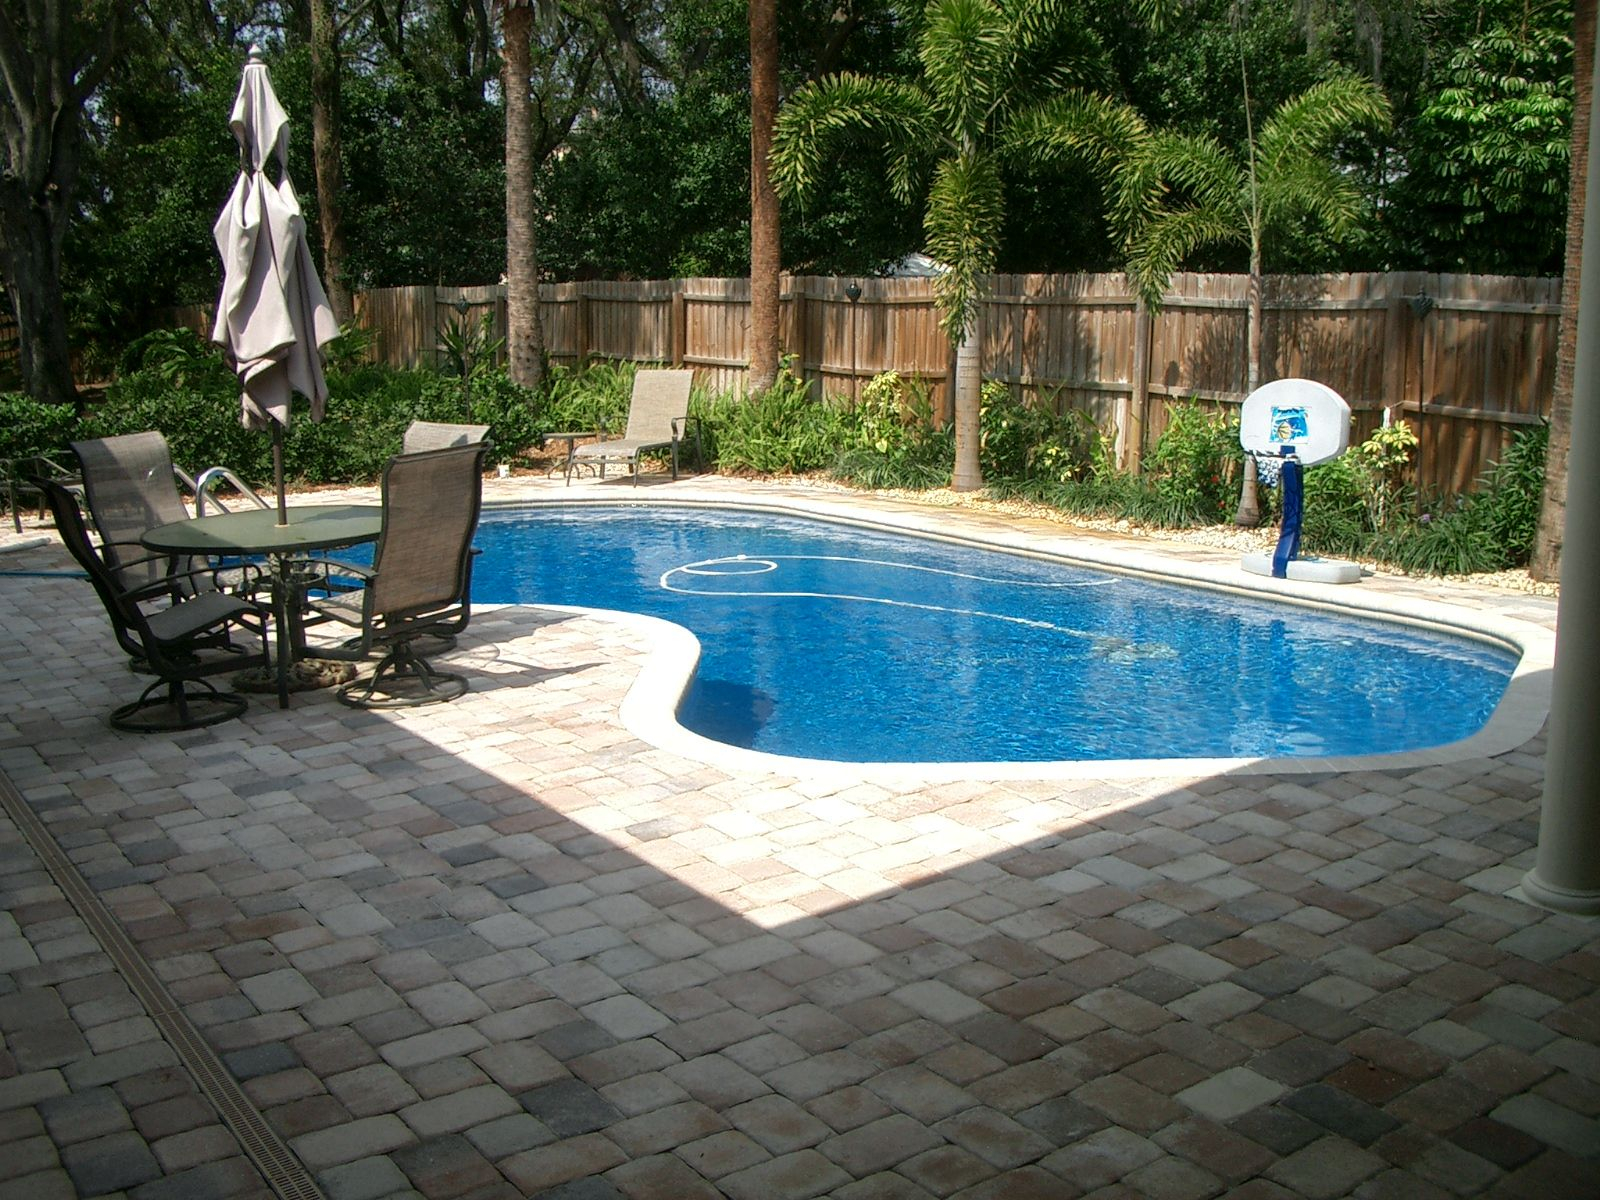 Backyard Landscaping Ideas Swimming Pool Design Pool Landscaping intended for 11 Genius Ideas How to Make Small Backyard Pool Landscaping Ideas